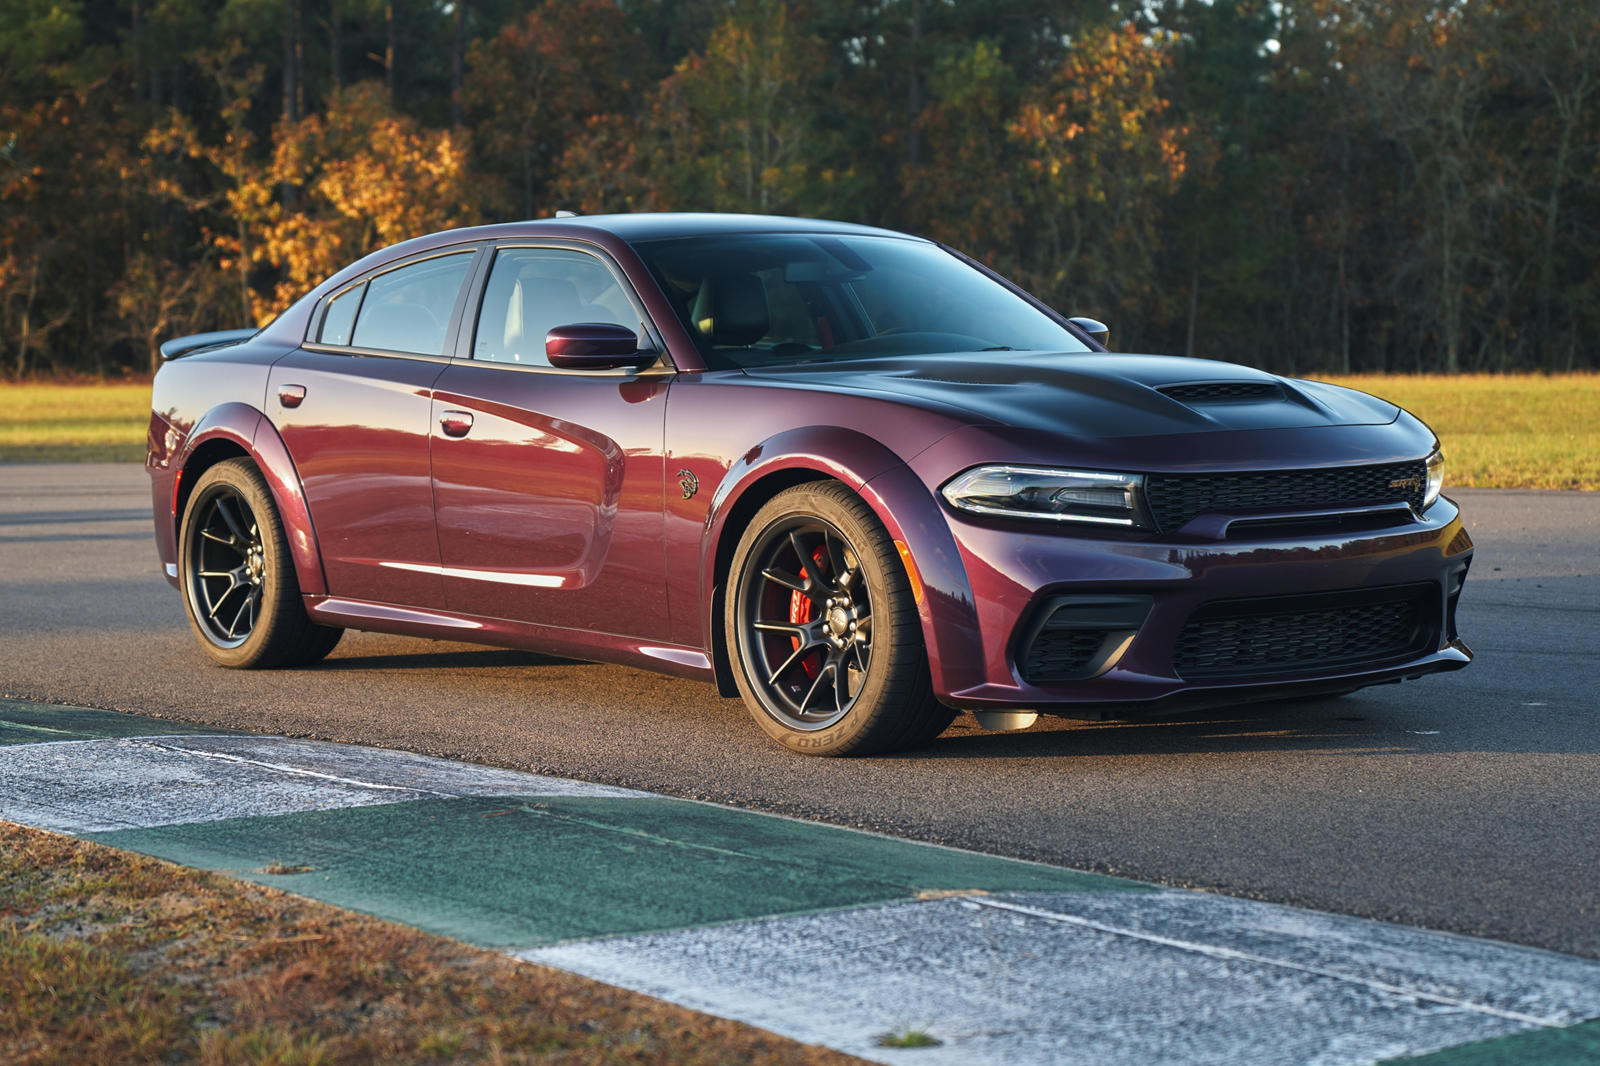 dodge charger hellcat redeye kaufen 2021 Dodge Charger SRT Hellcat First Drive Review: A